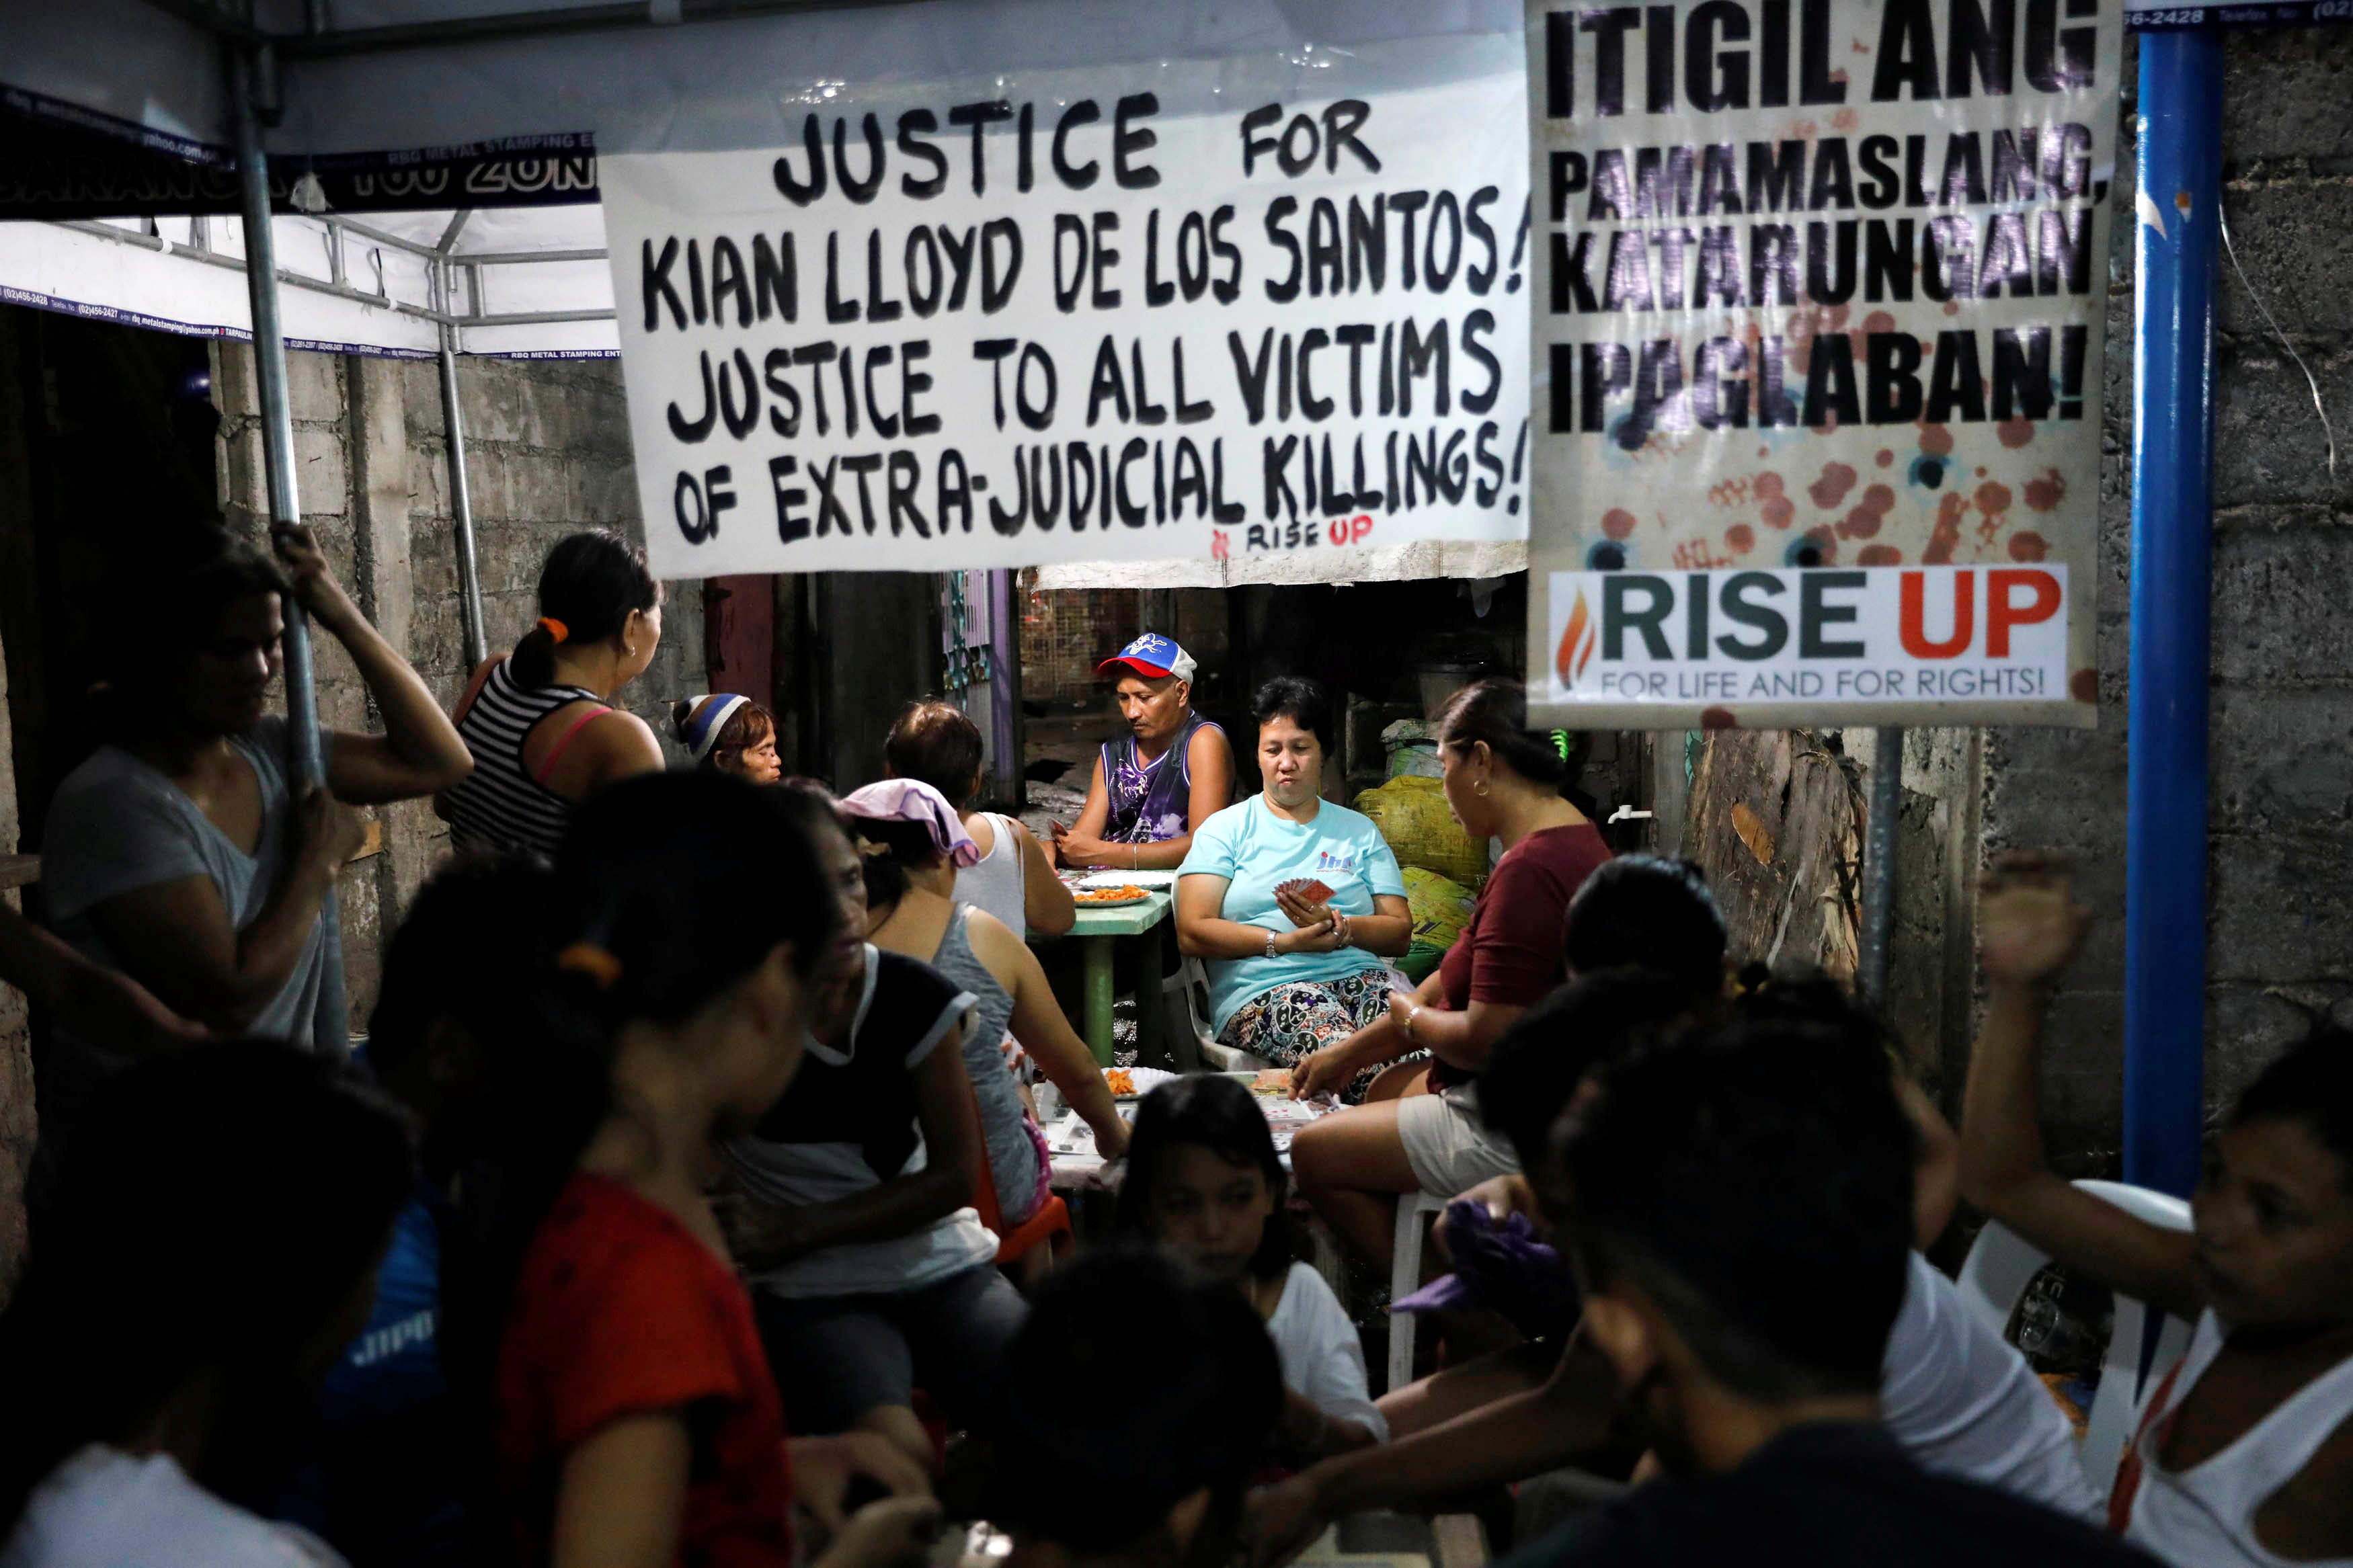 Neighbours play cards at the wake of Kian delos Santos, a 17-year-old student who was shot during anti-drug operations in Caloocan, Metro Manila, Philippines August 22, 2017. REUTERS/Dondi Tawatao